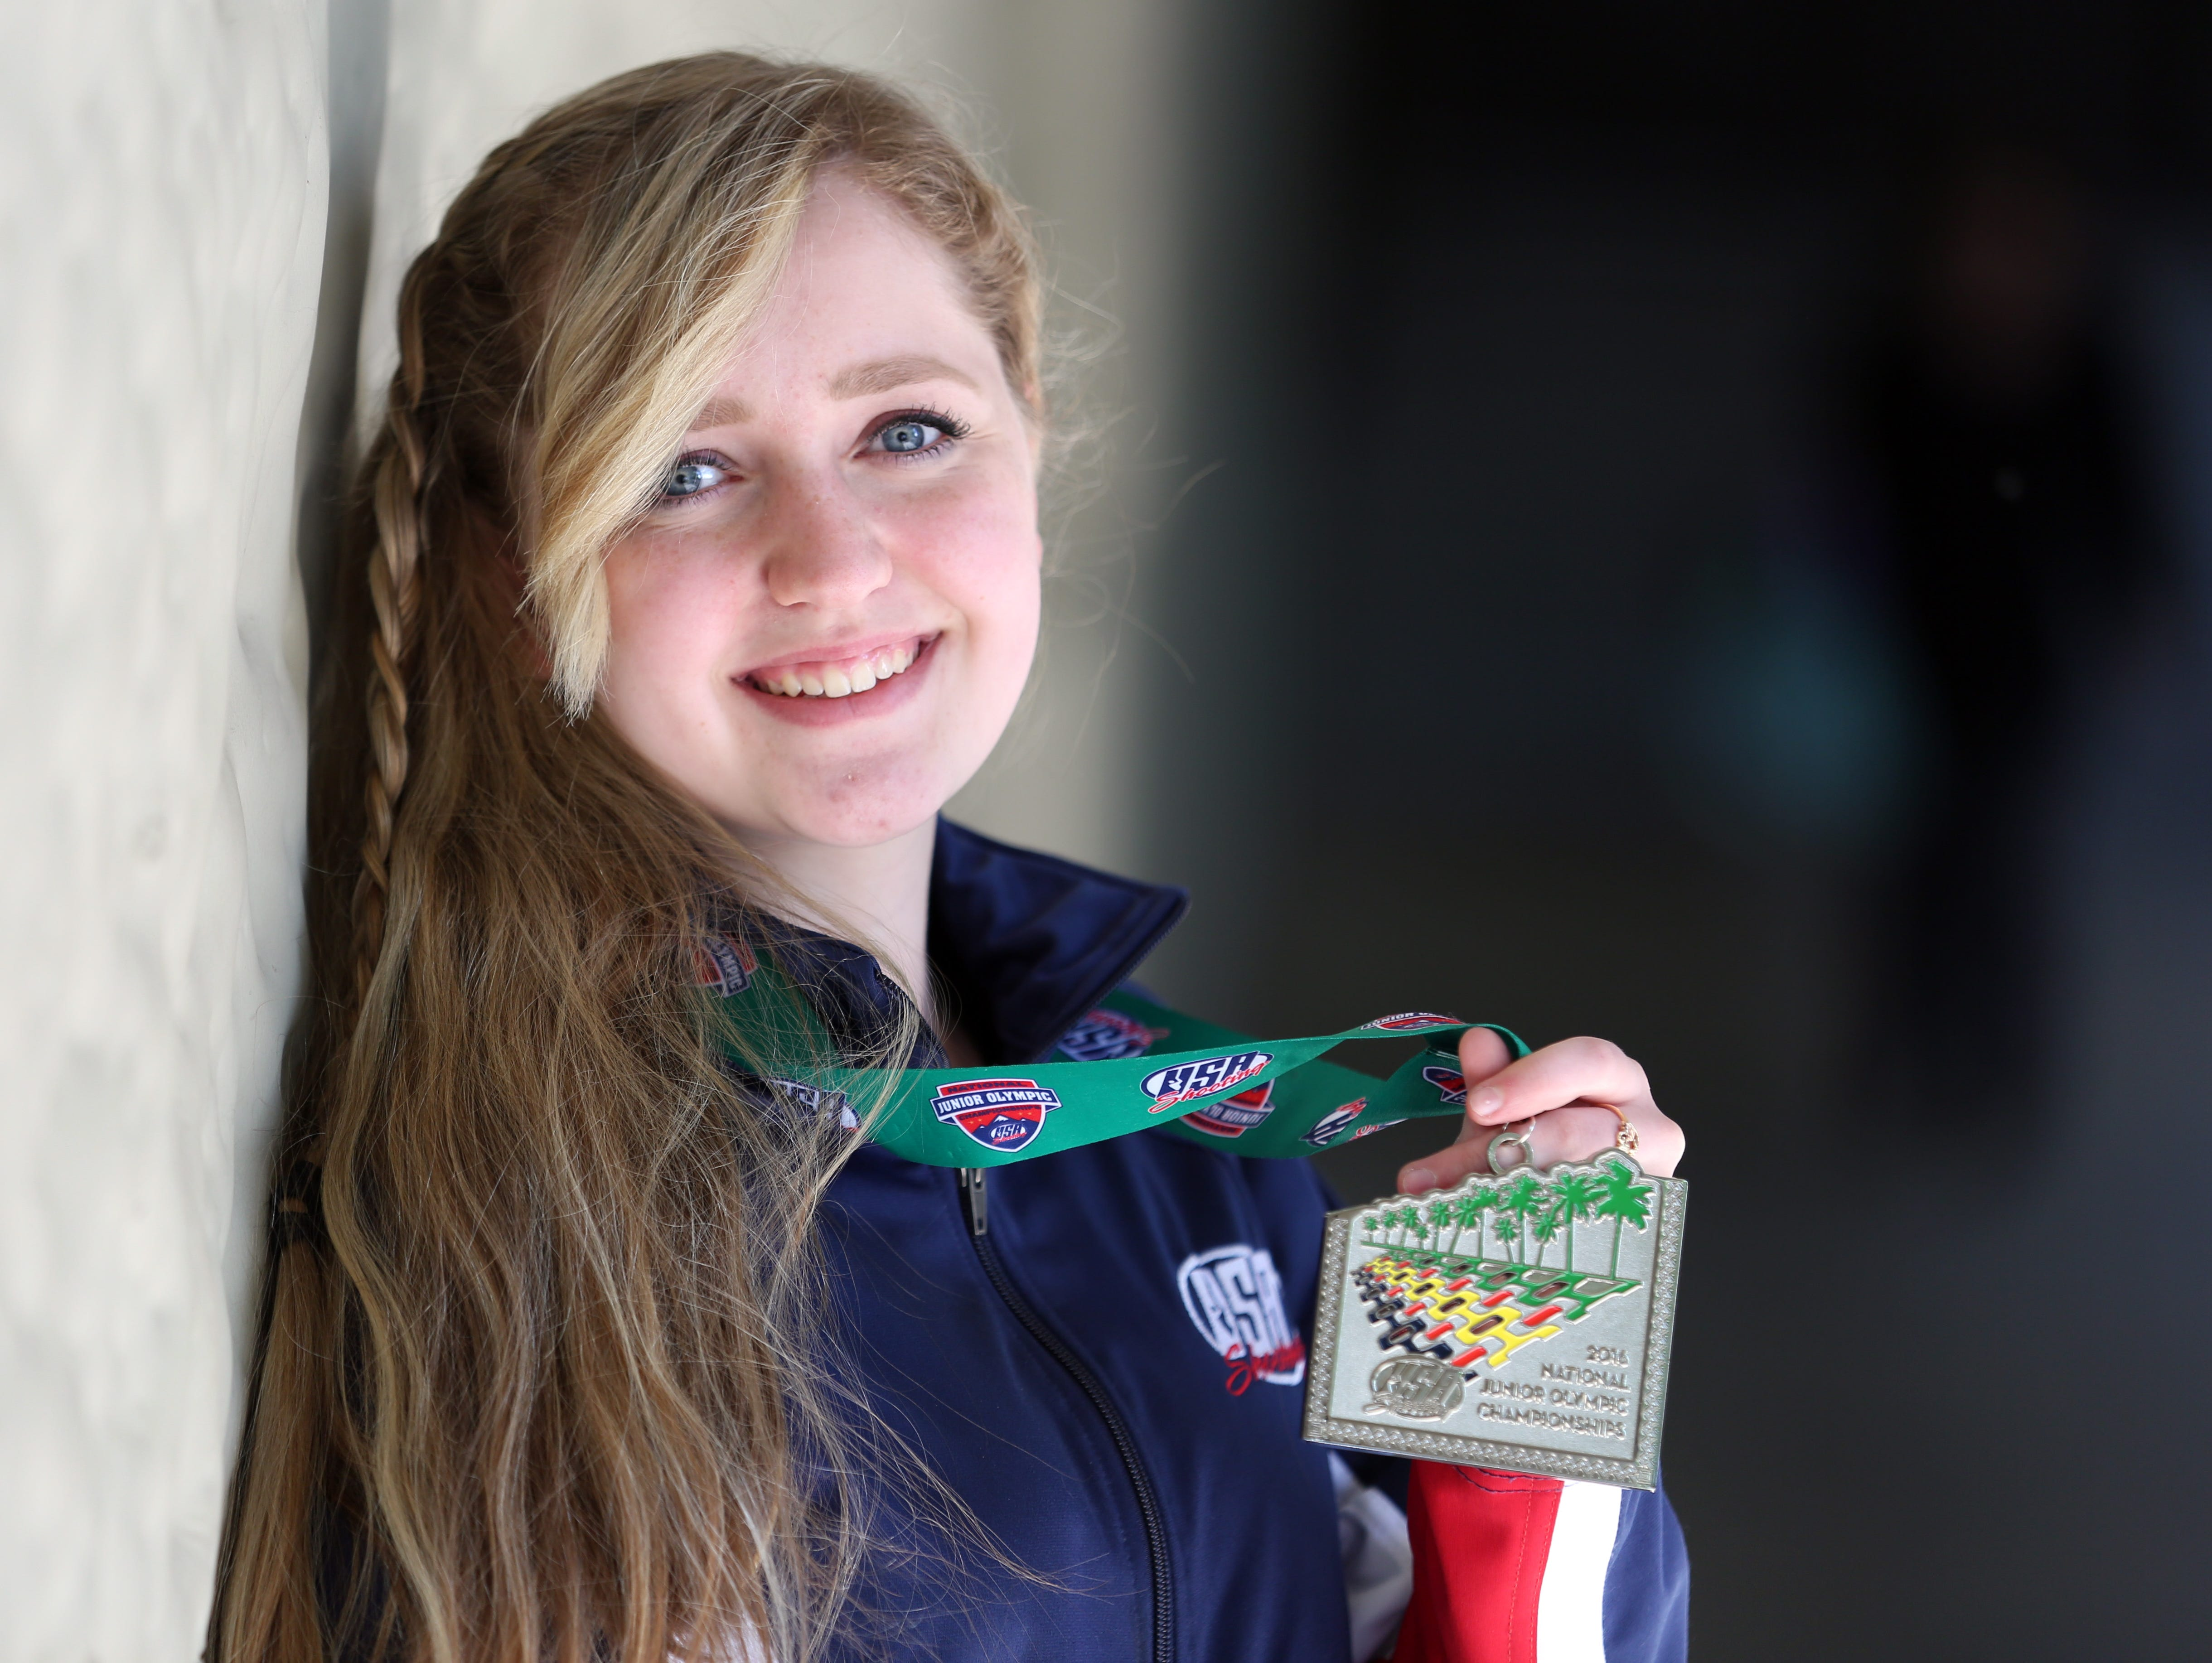 North Salem High School freshman Taylor Gibson placed 12th in the Junior Olympics for air rifle shooting. Photographed Monday, April 25, 2016.